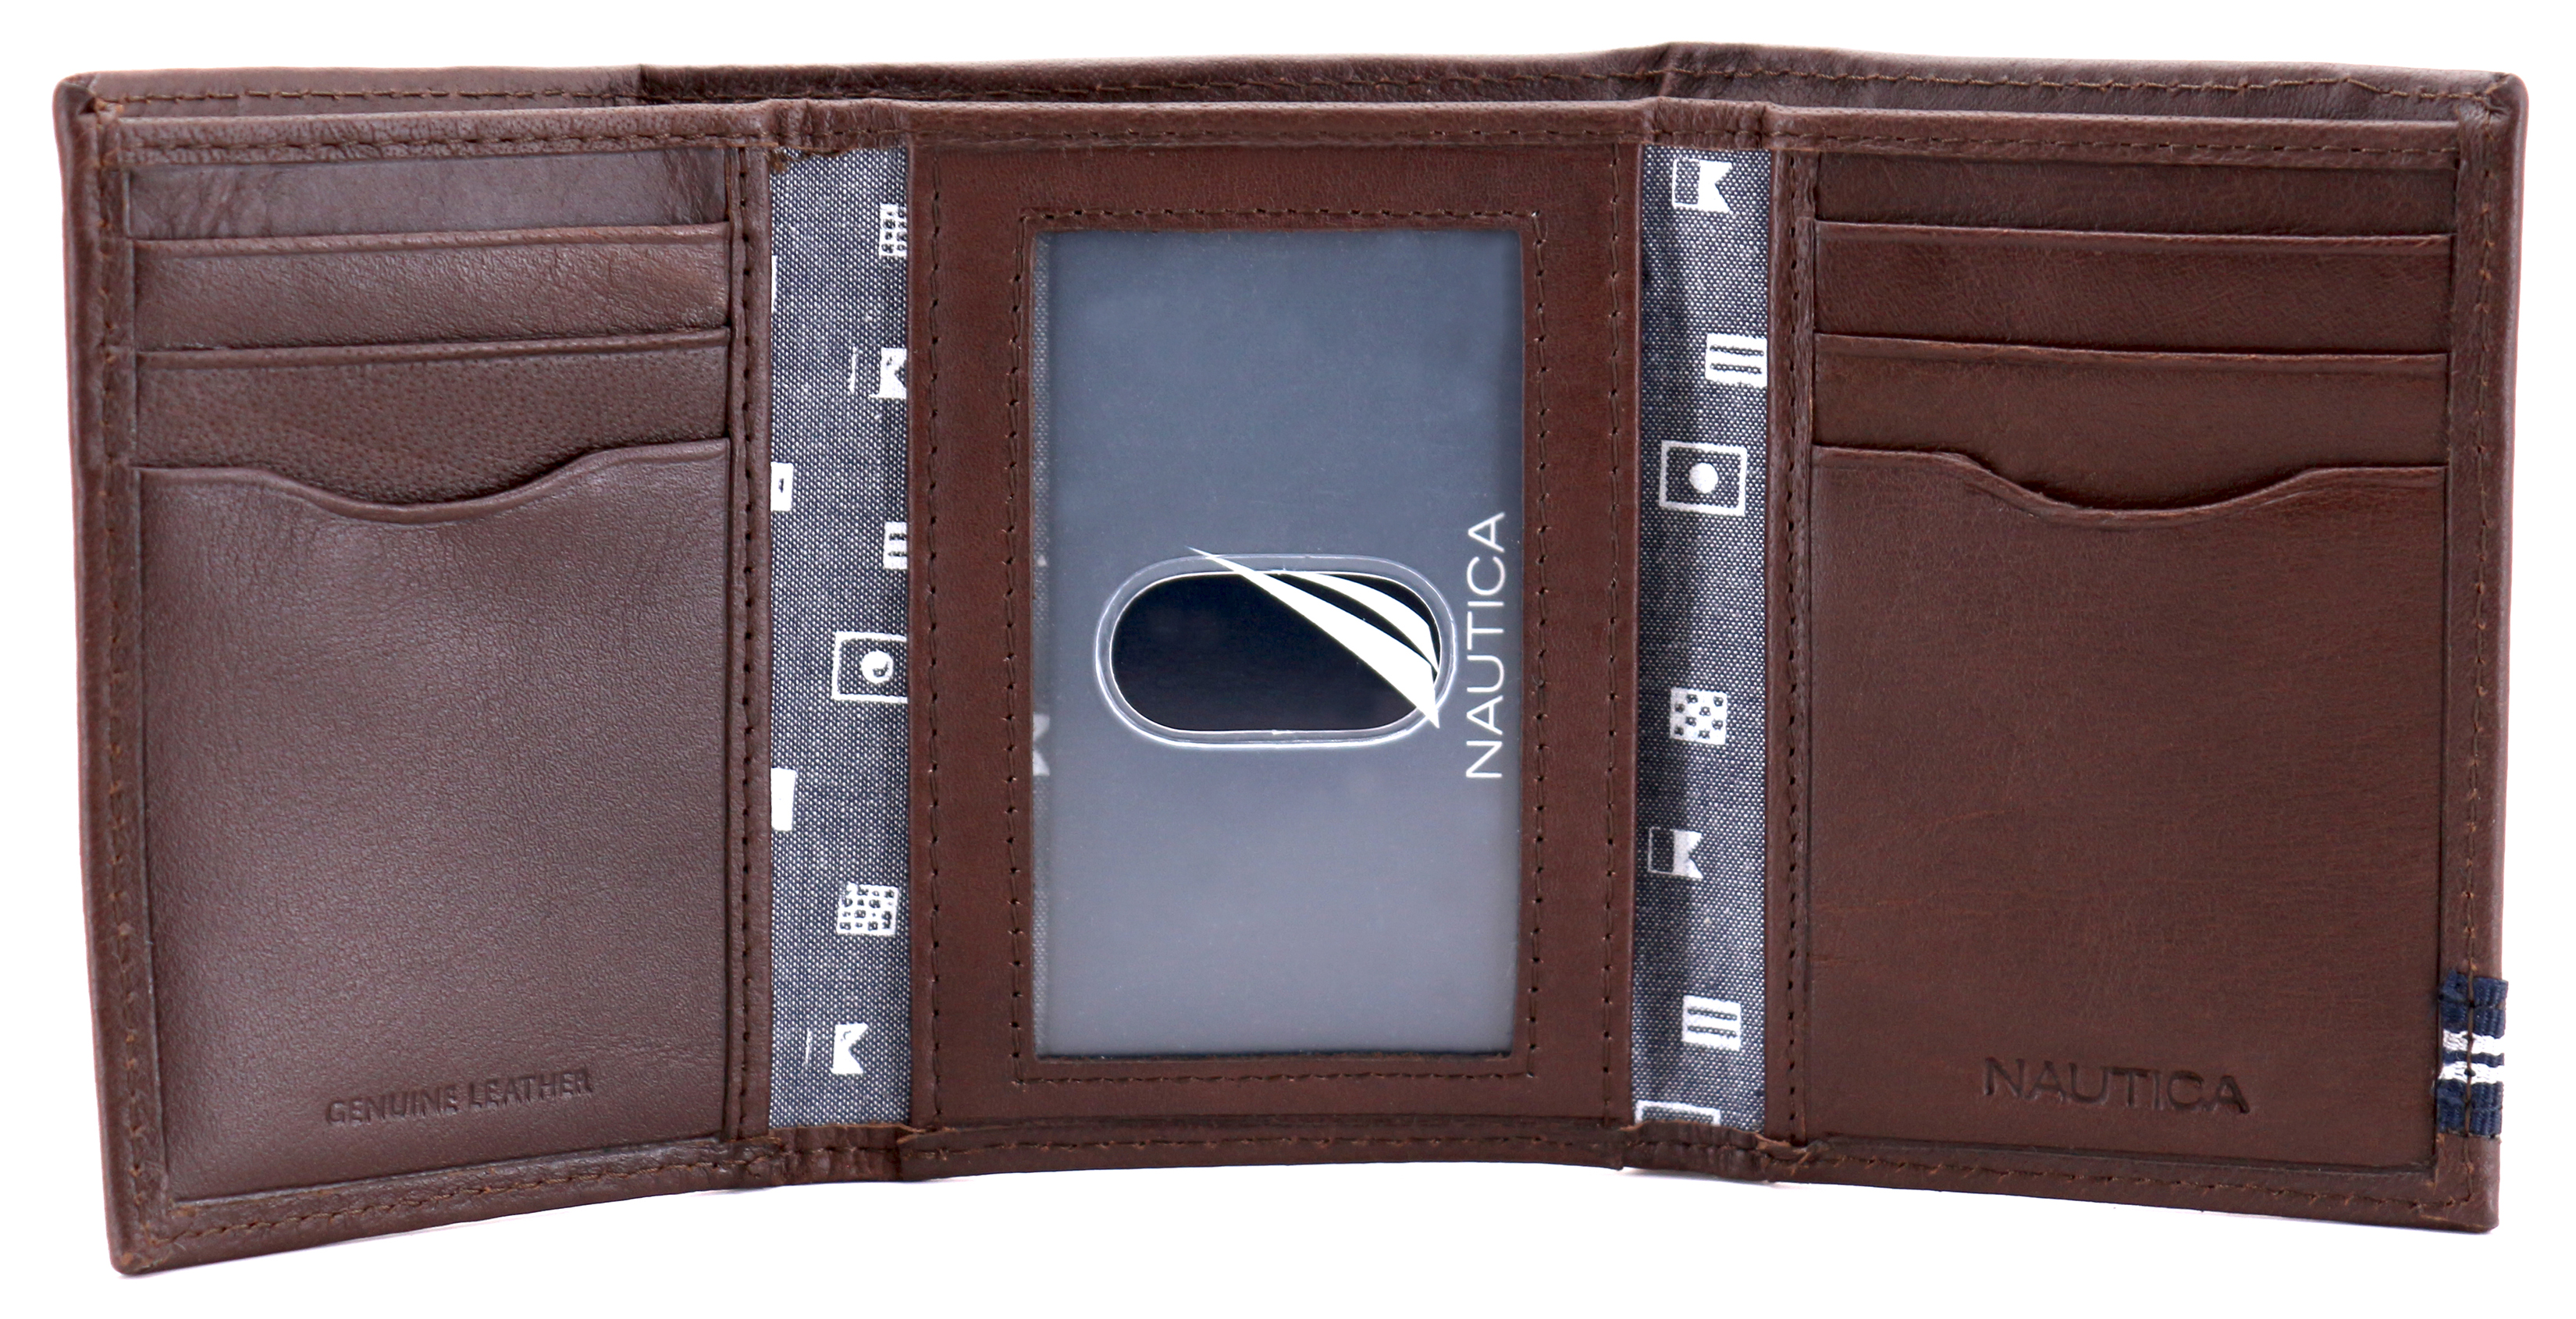 Nautica-Men-039-s-Genuine-Leather-Credit-Card-Id-Holder-Trifold-Wallet thumbnail 18